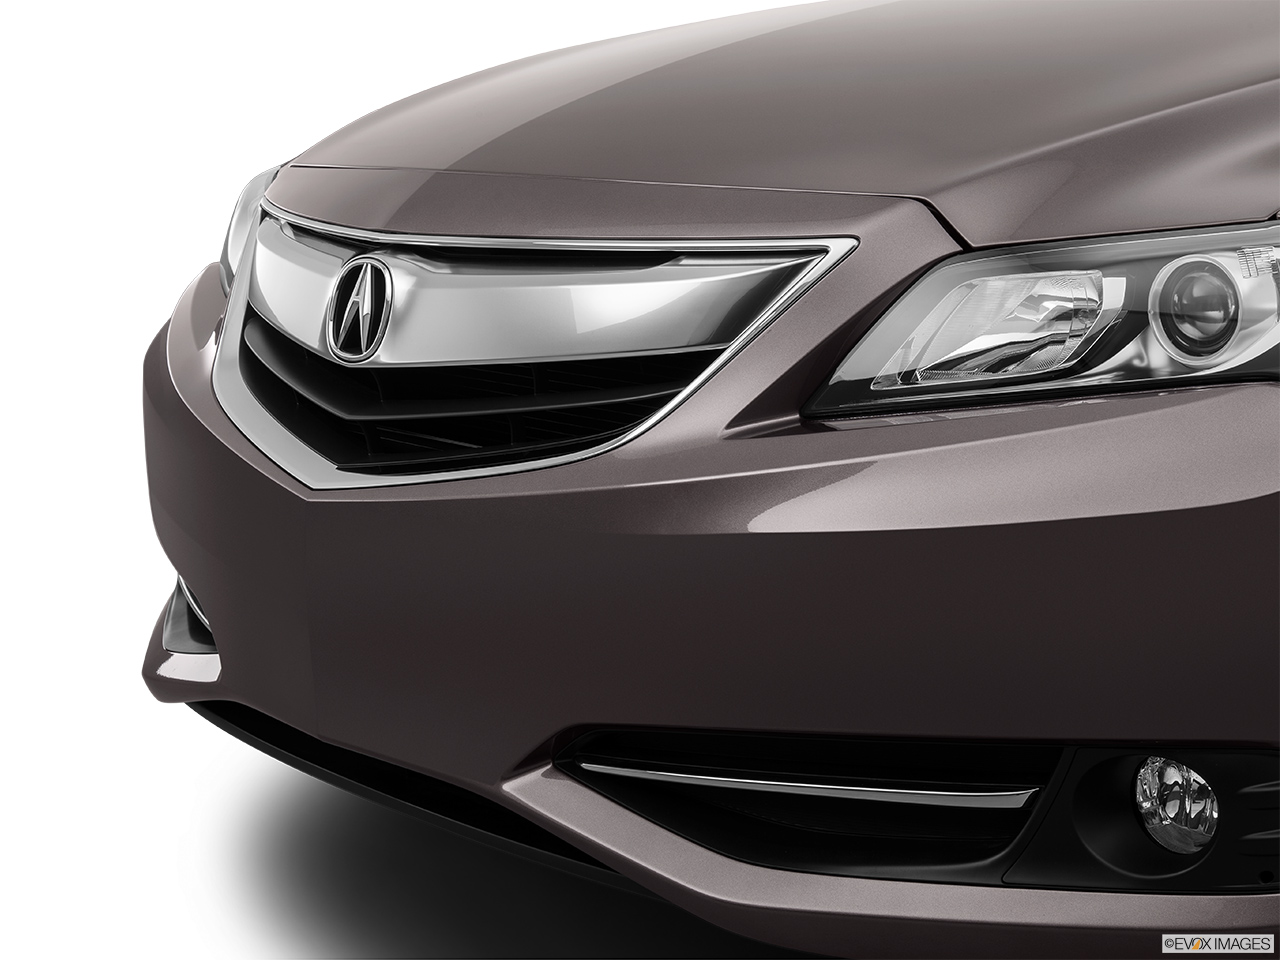 2014 Acura ILX Hybrid Base Close up of Grill.